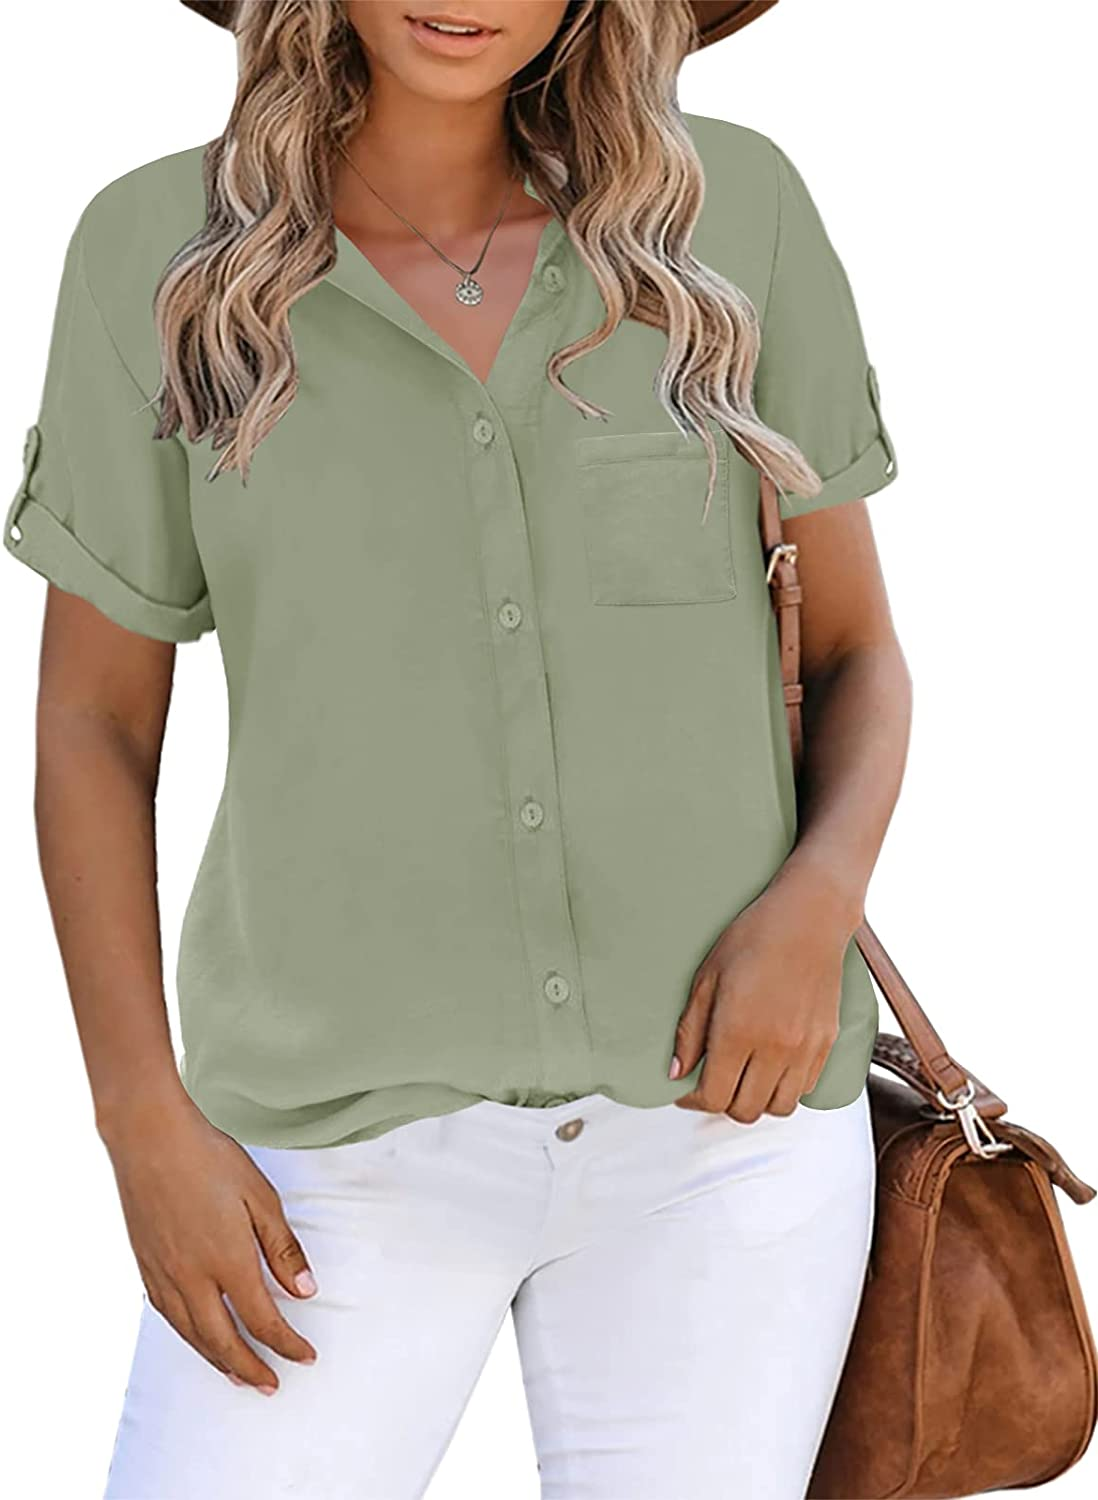 Inorin Womens Button Down Shirts Short Sleeve Collared Work Business Office Casual V Neck Tops Blouses